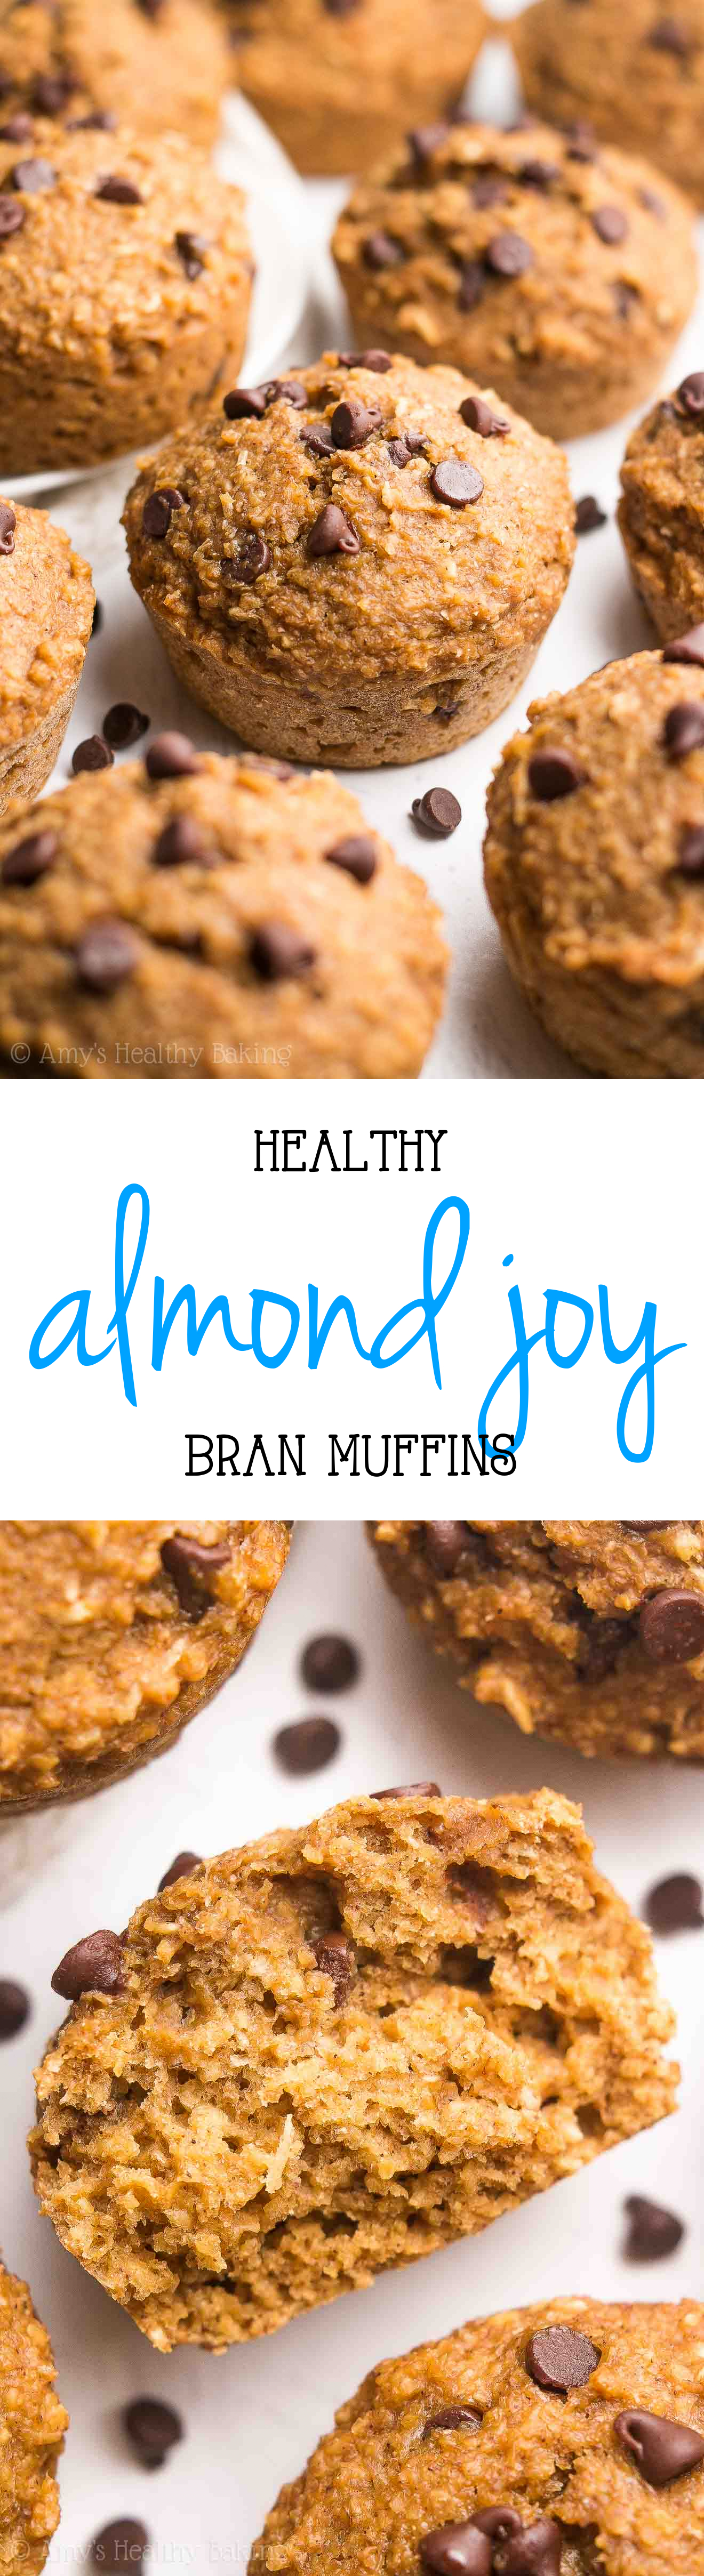 Healthy Almond Joy Bran Muffins -- an easy guilt-free breakfast recipe! They're as tender as cupcakes! SO good!